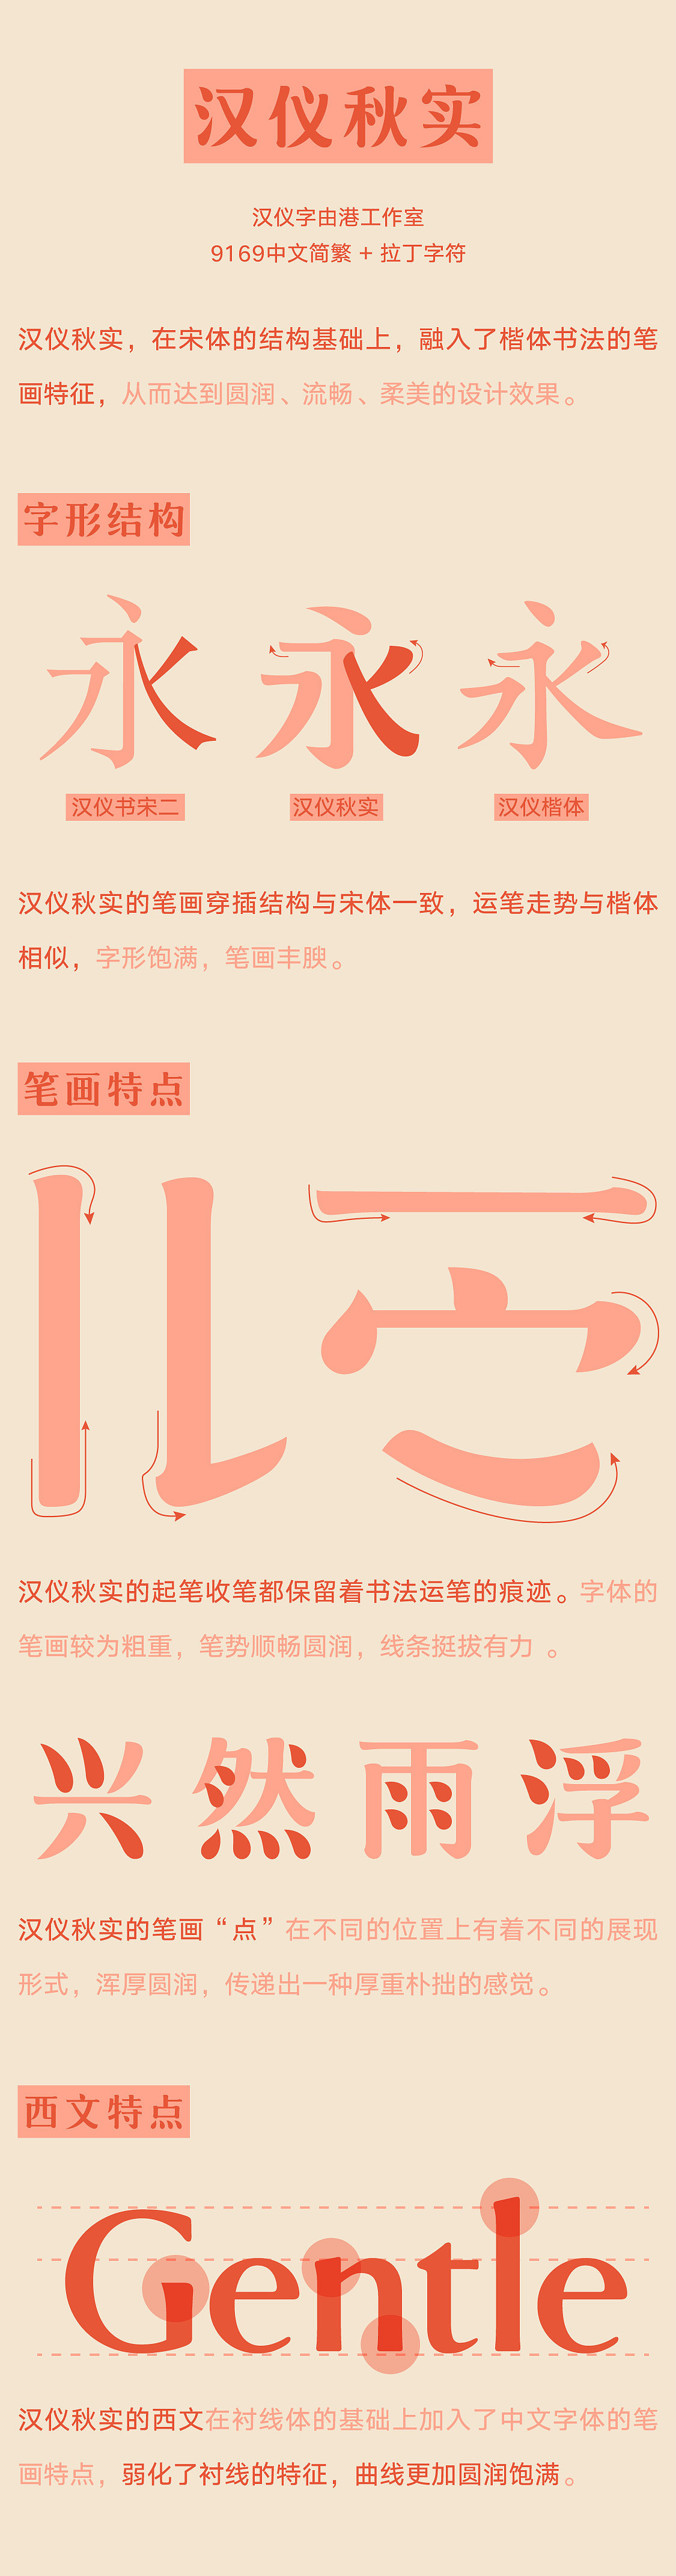 Chinese Creative Font Design-Happy Girls' Festival | Paying tribute to front-line female medical workers